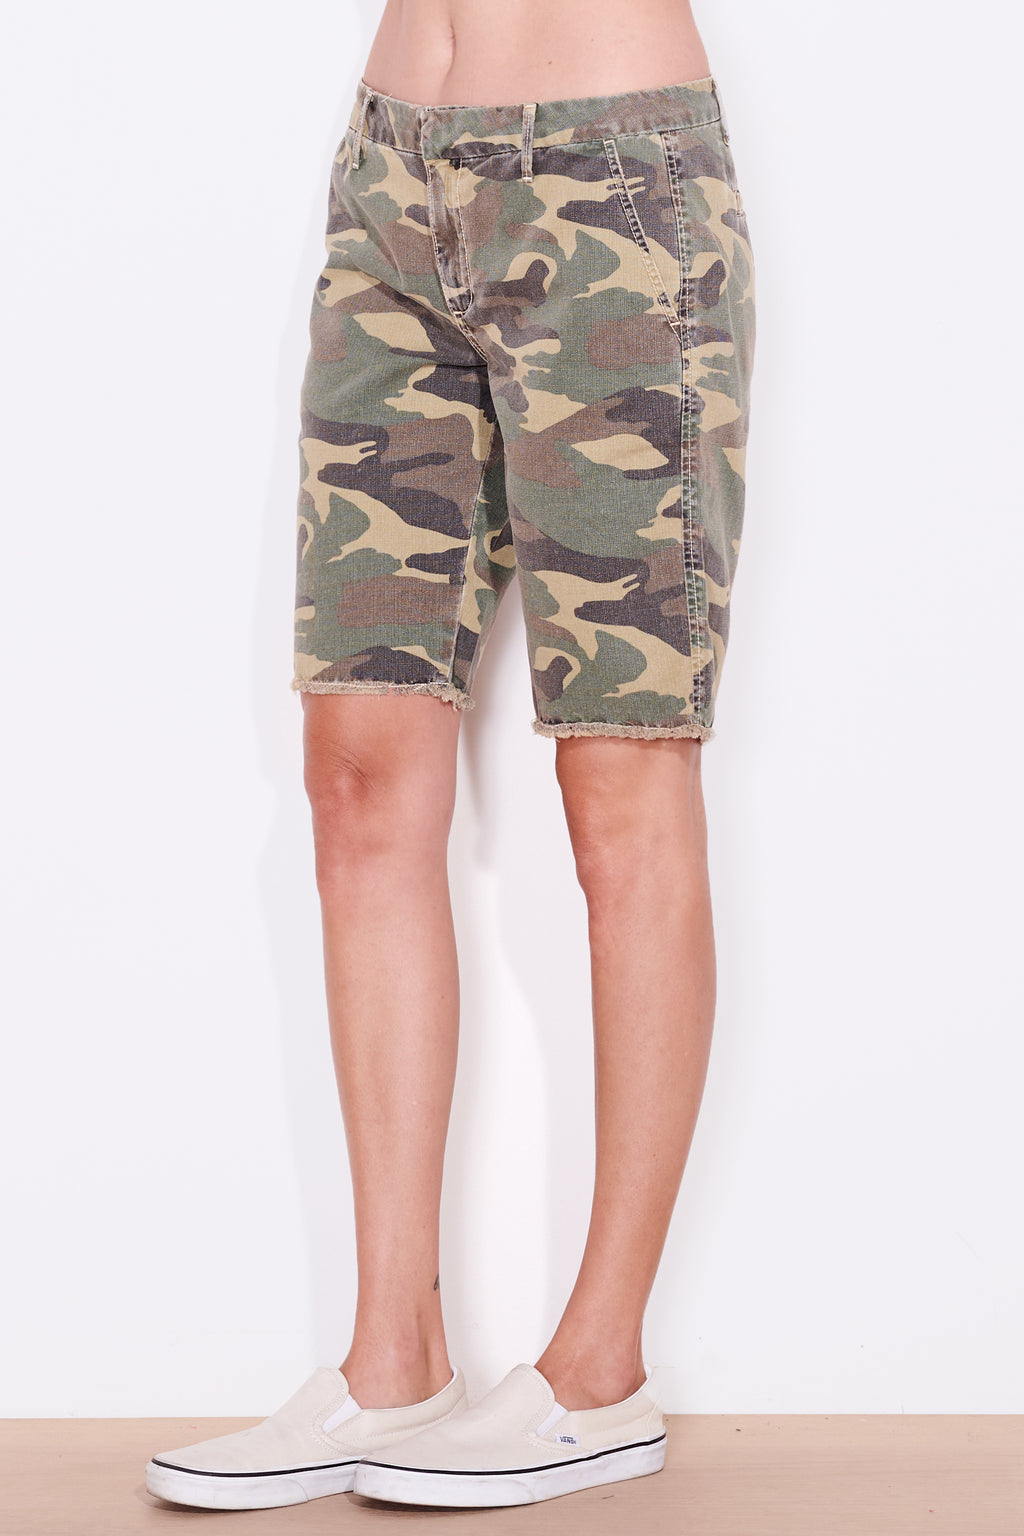 sundry camo bermuda shorts super bleach